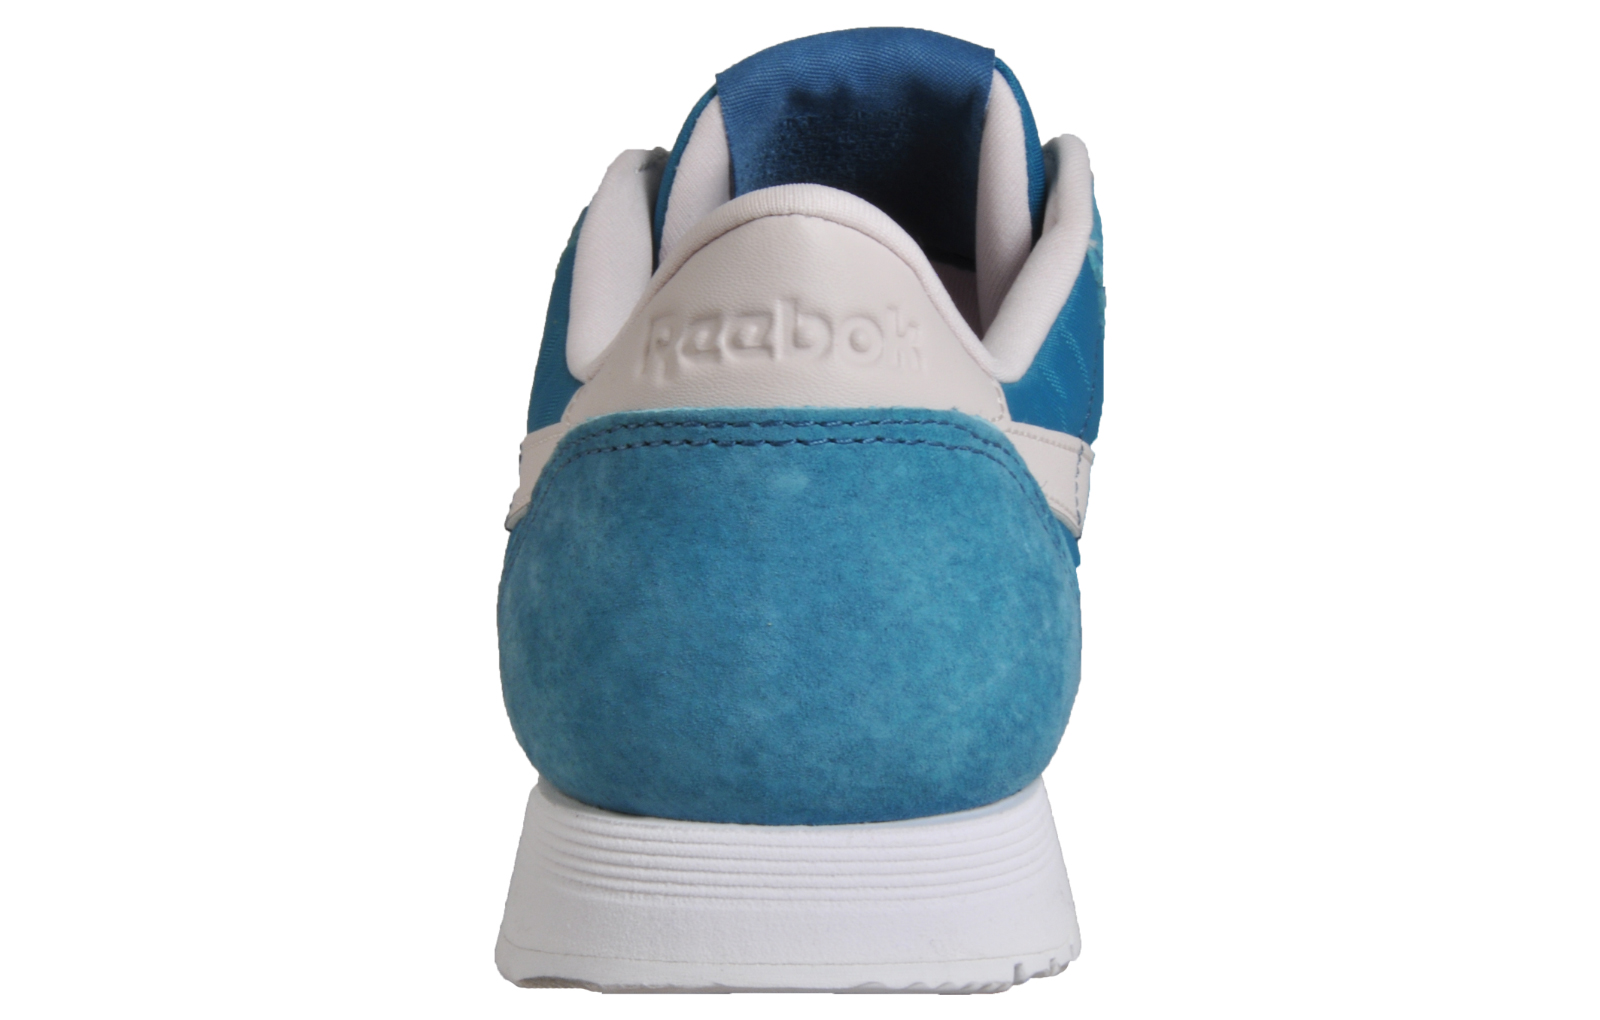 a0af78cd8e7 Reebok Classic CL Nylon X Face Stockholm Women s Retro Fashion Trainers Ltd  Edition